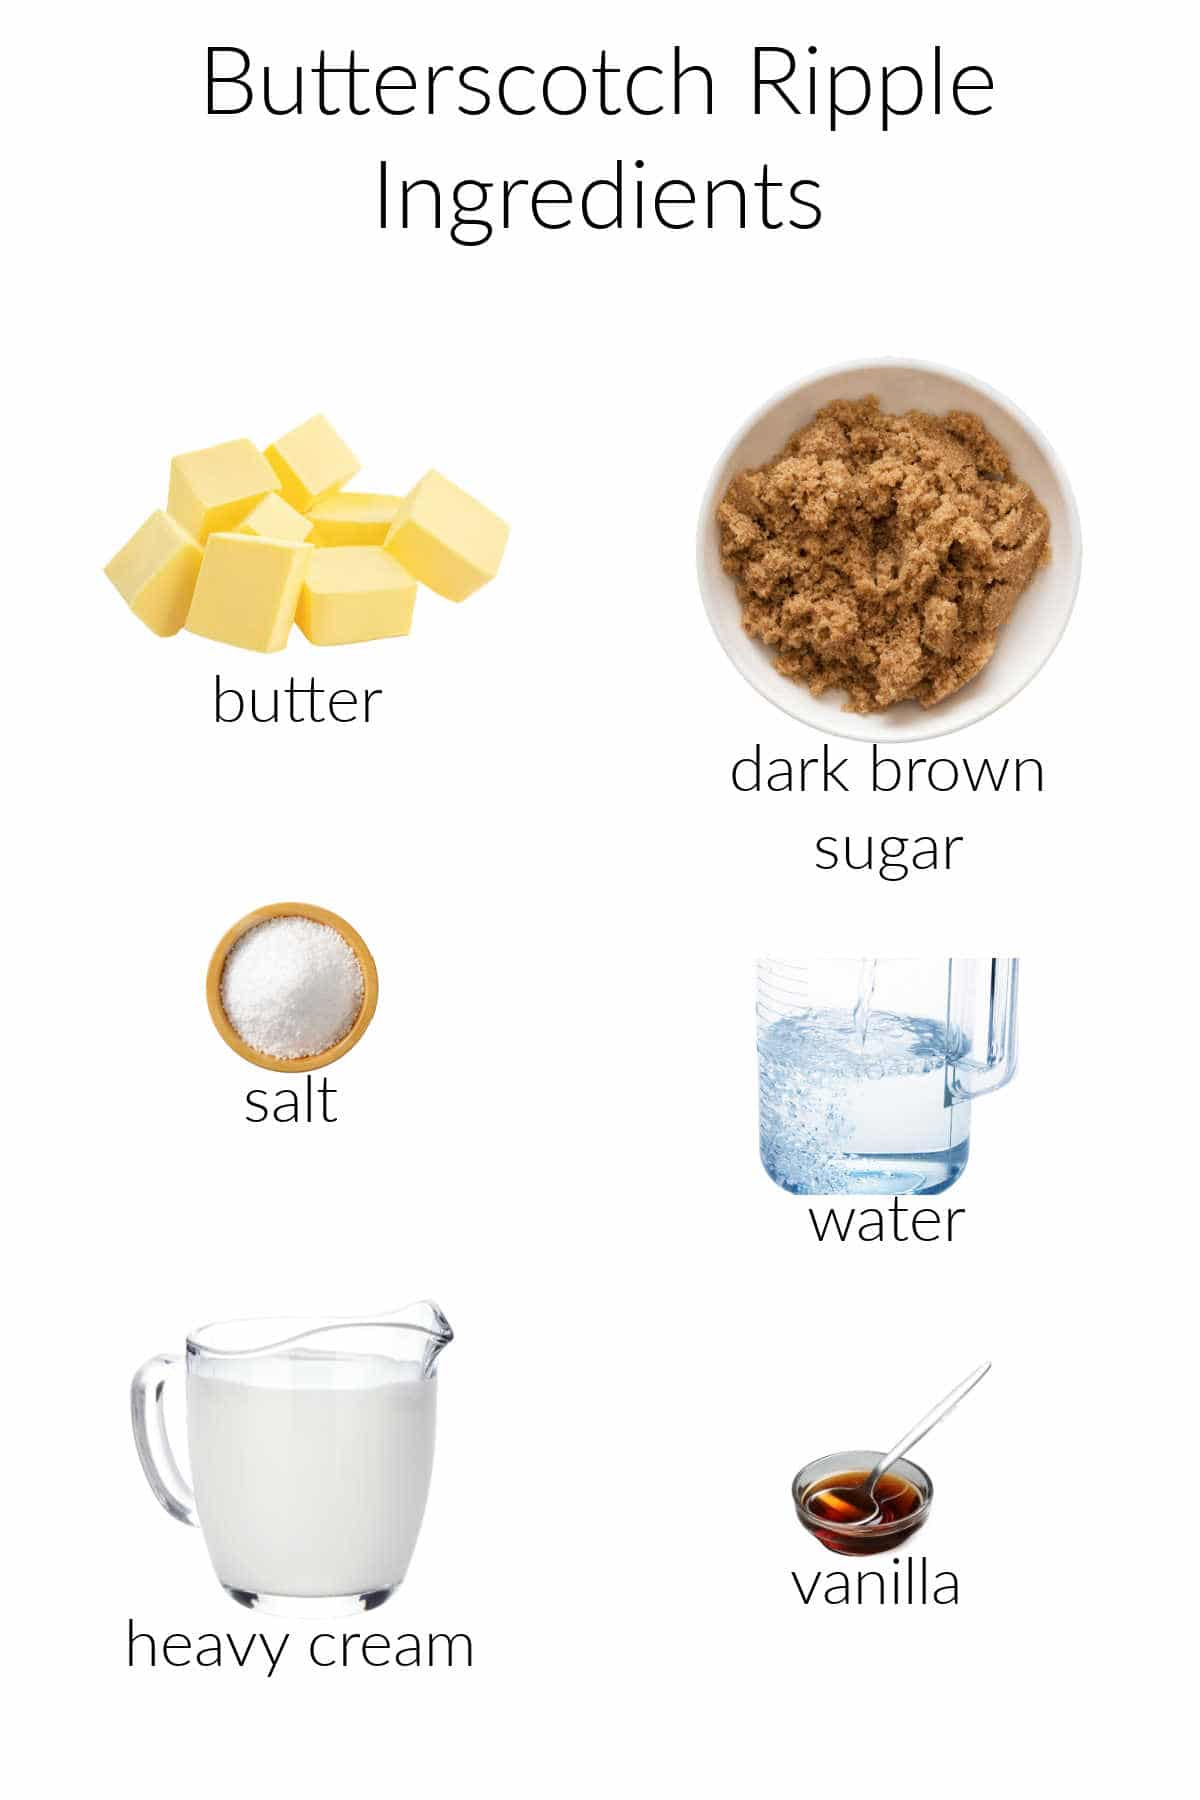 A collage of the six ingredients needed to make butterscotch ripple: butter, brown sugar, salt, water, heavy cream, and vanilla.